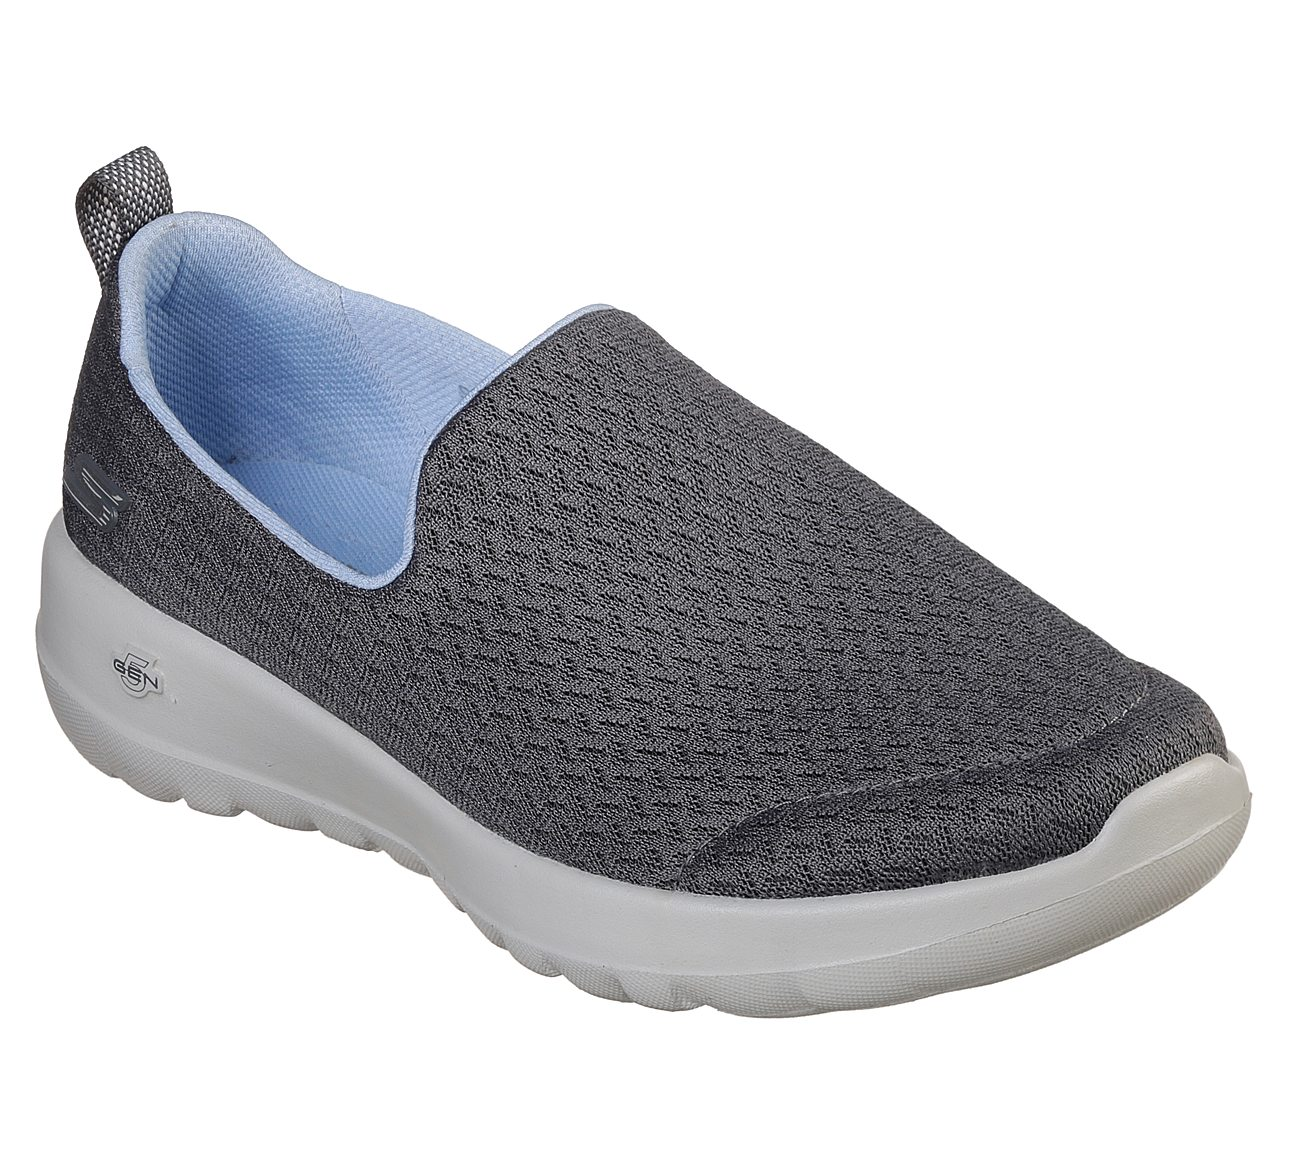 c87b600adbdb9 Buy SKECHERS Skechers GOwalk Joy - Rejoice Skechers Performance ...